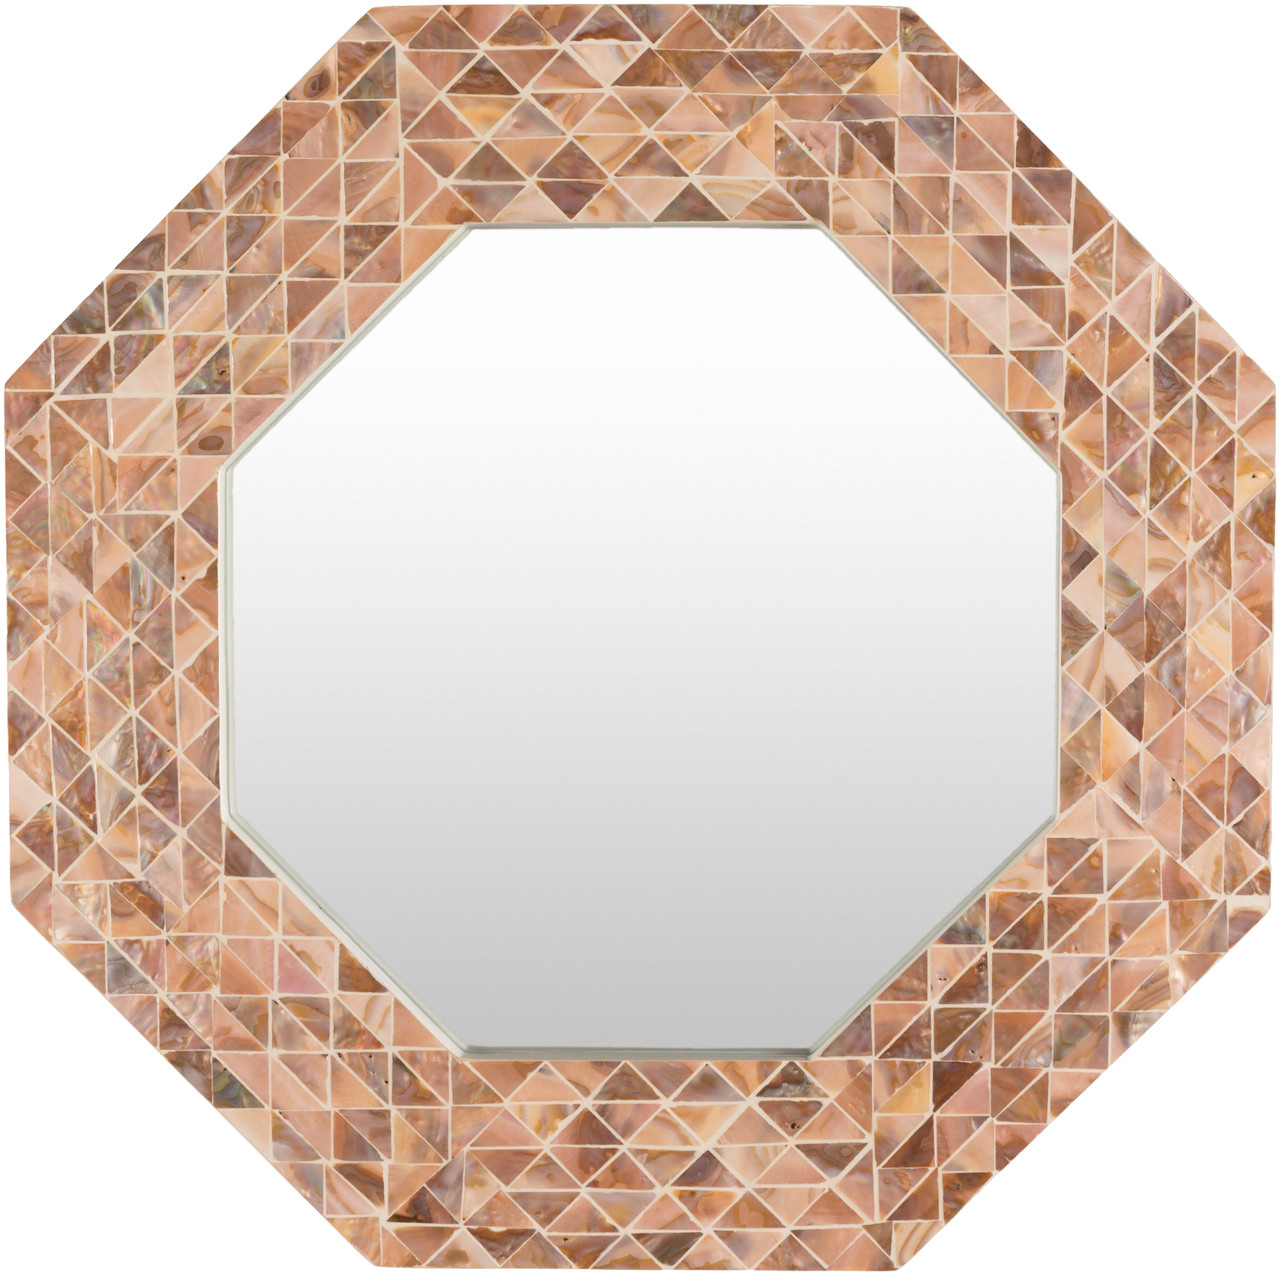 21 7 Copper Octagon Shaped Mosaic Inlaid Decorative Wall Mirror